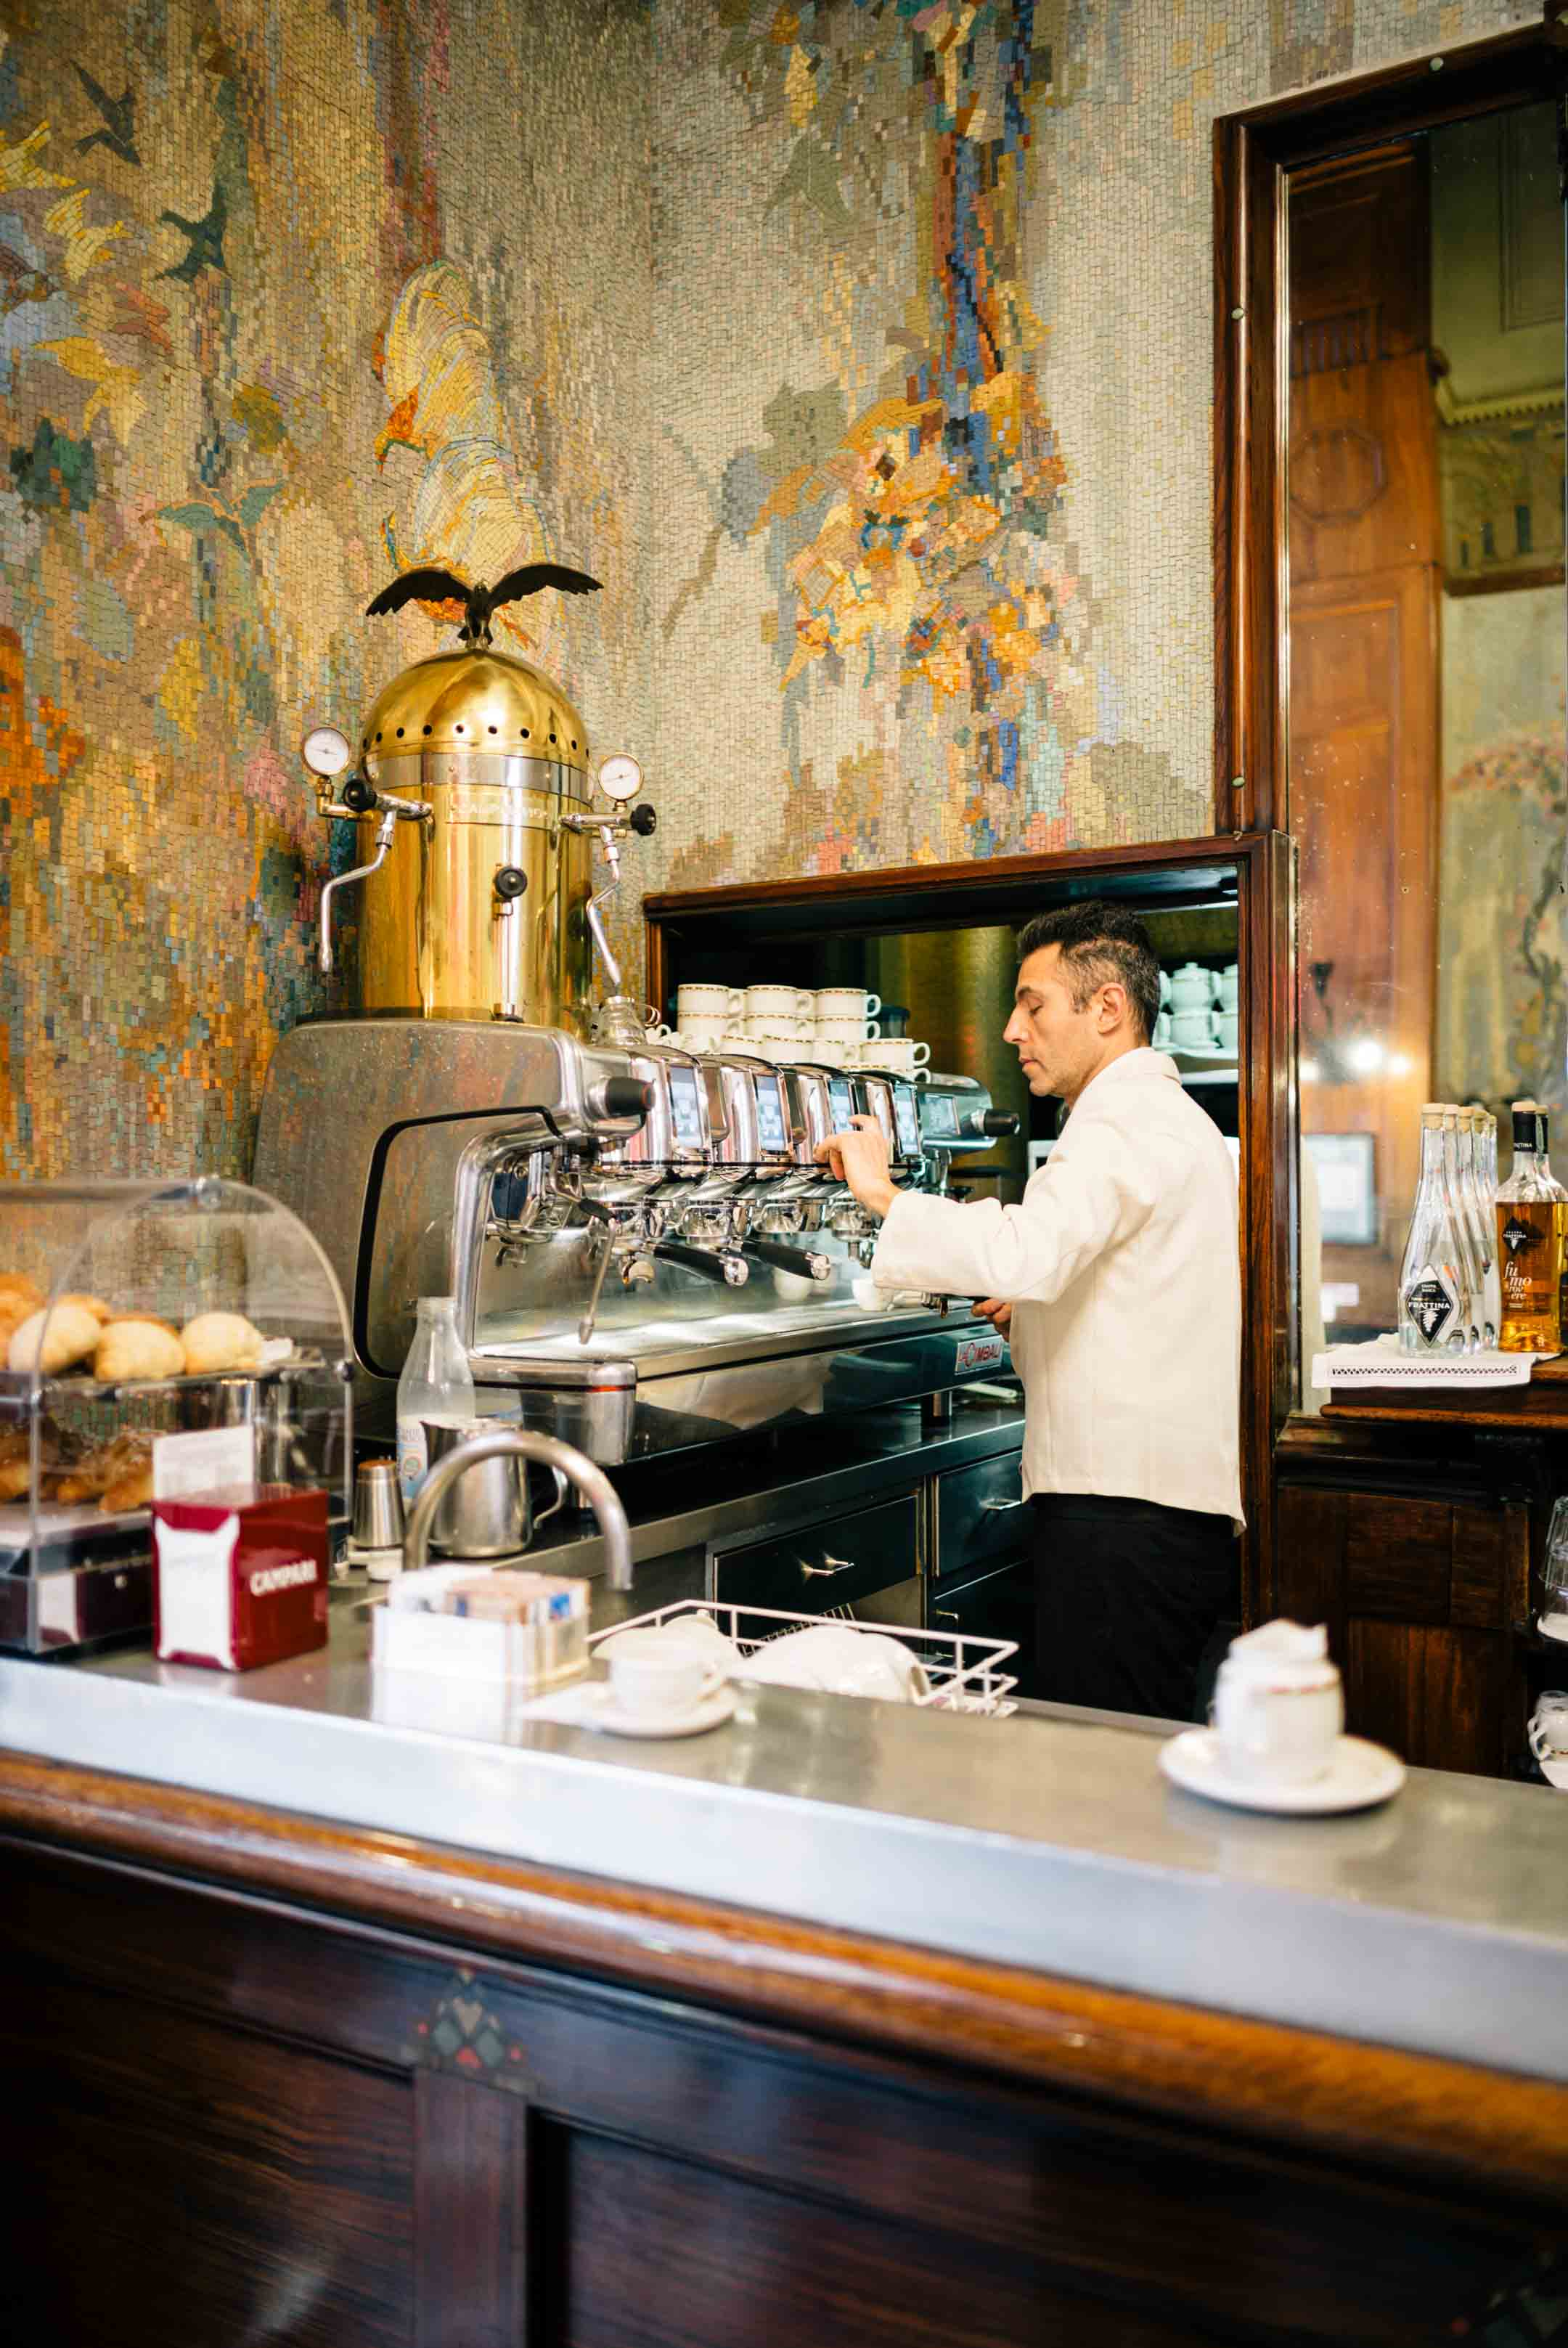 The Taste Edit recommends getting a coffee in the morning at Camparino in Galleria in Milan - the original campari cocktail bar - before heading to the duomo.